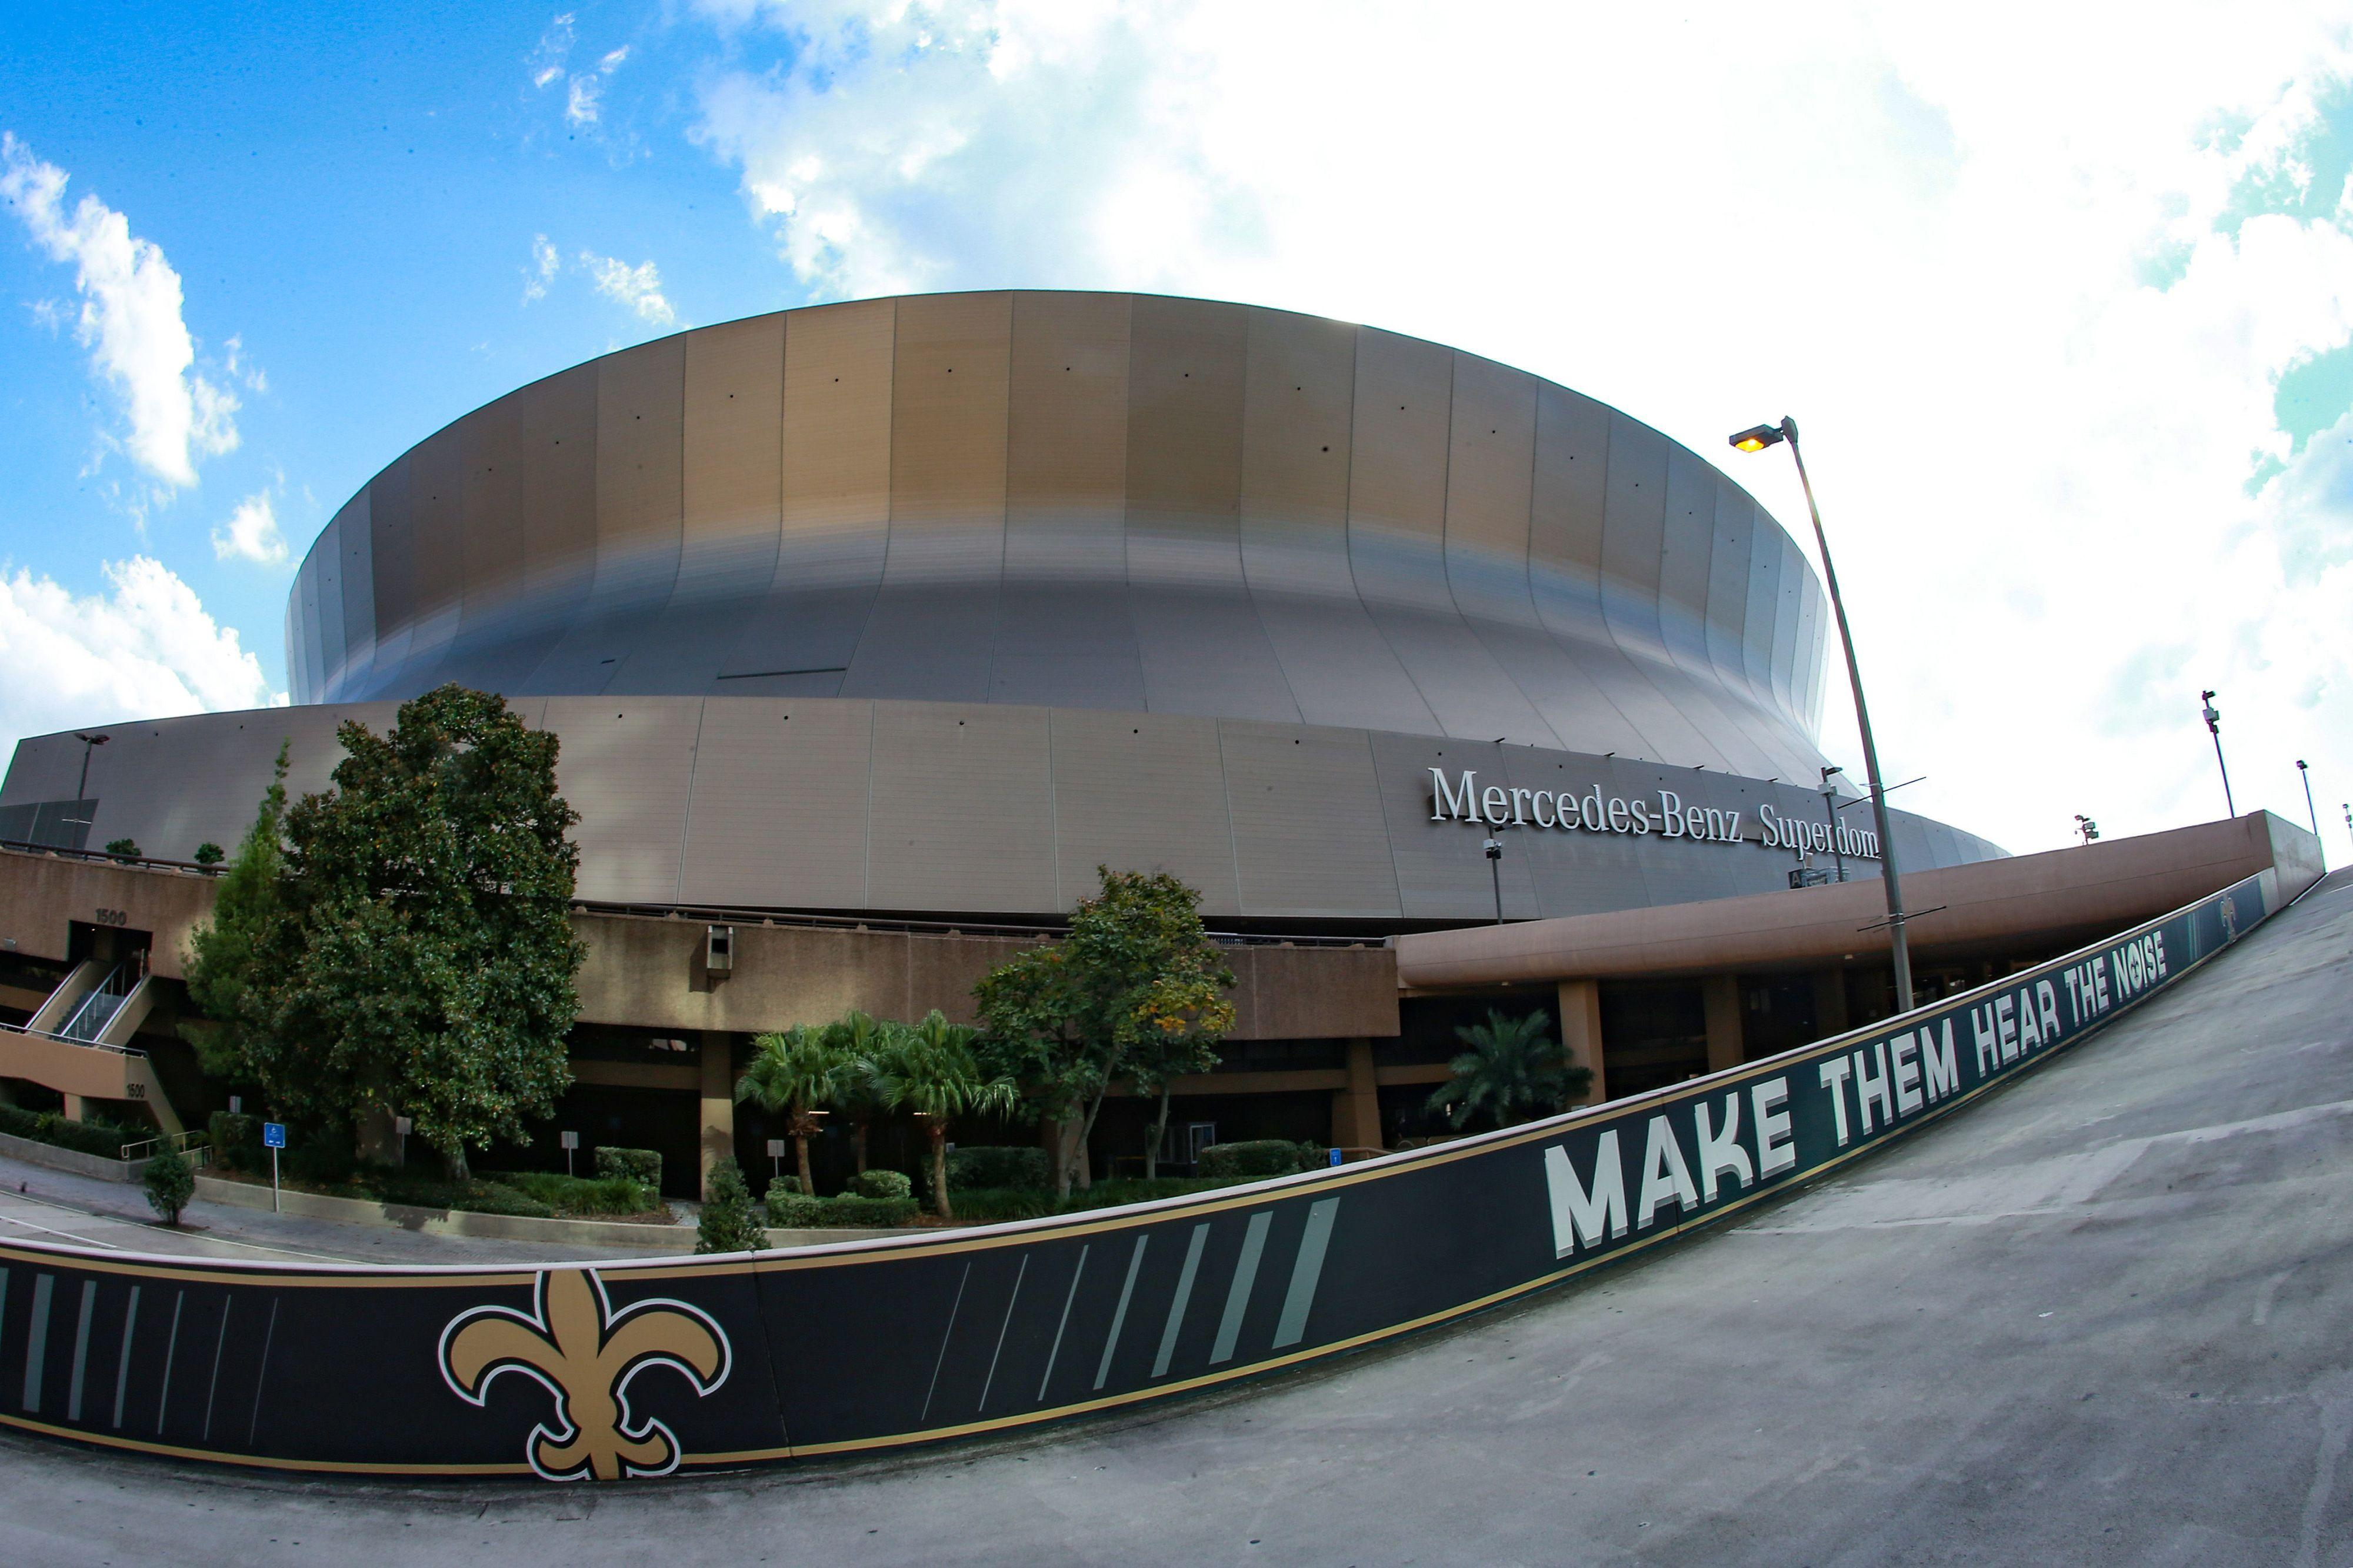 New Orleans Saints consider playing games at LSU after request for more fans at Superdome is denied